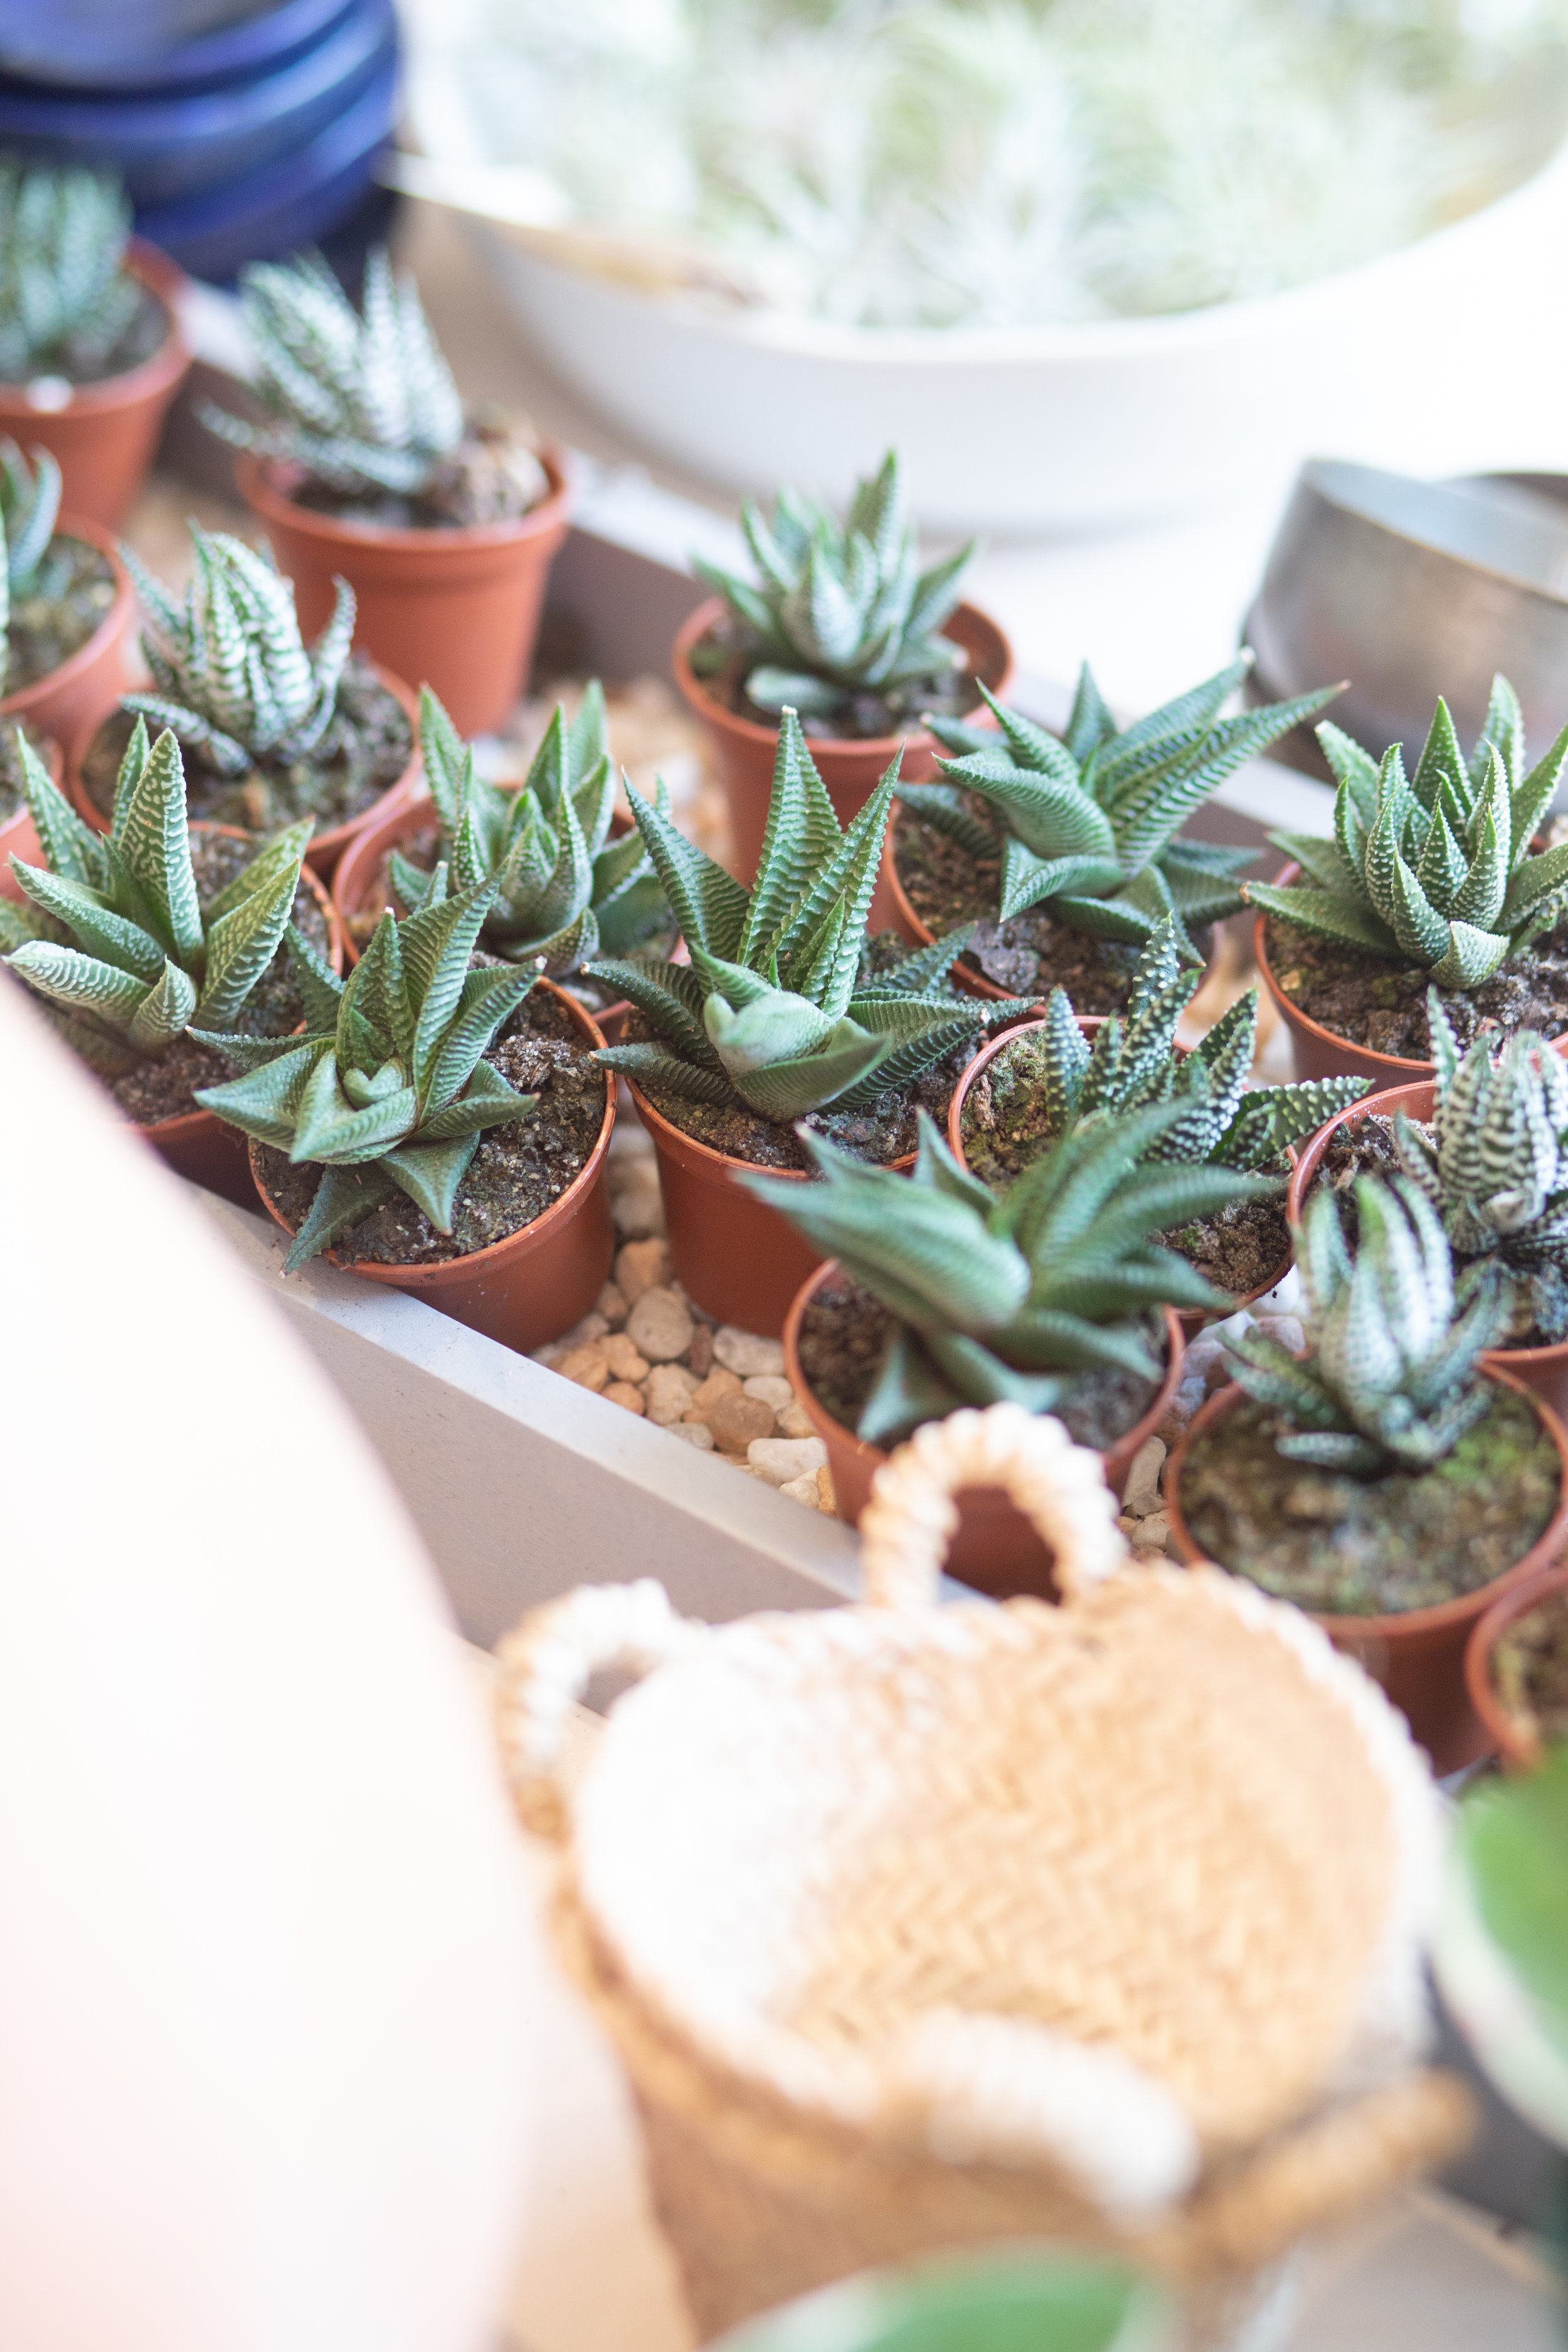 Most cacti and succulents, such as these harworthia, do not need high humidity. That means you do not need to ever mist them, as this can cause too much humidity, resulting in patches of rot on leaves or stems .